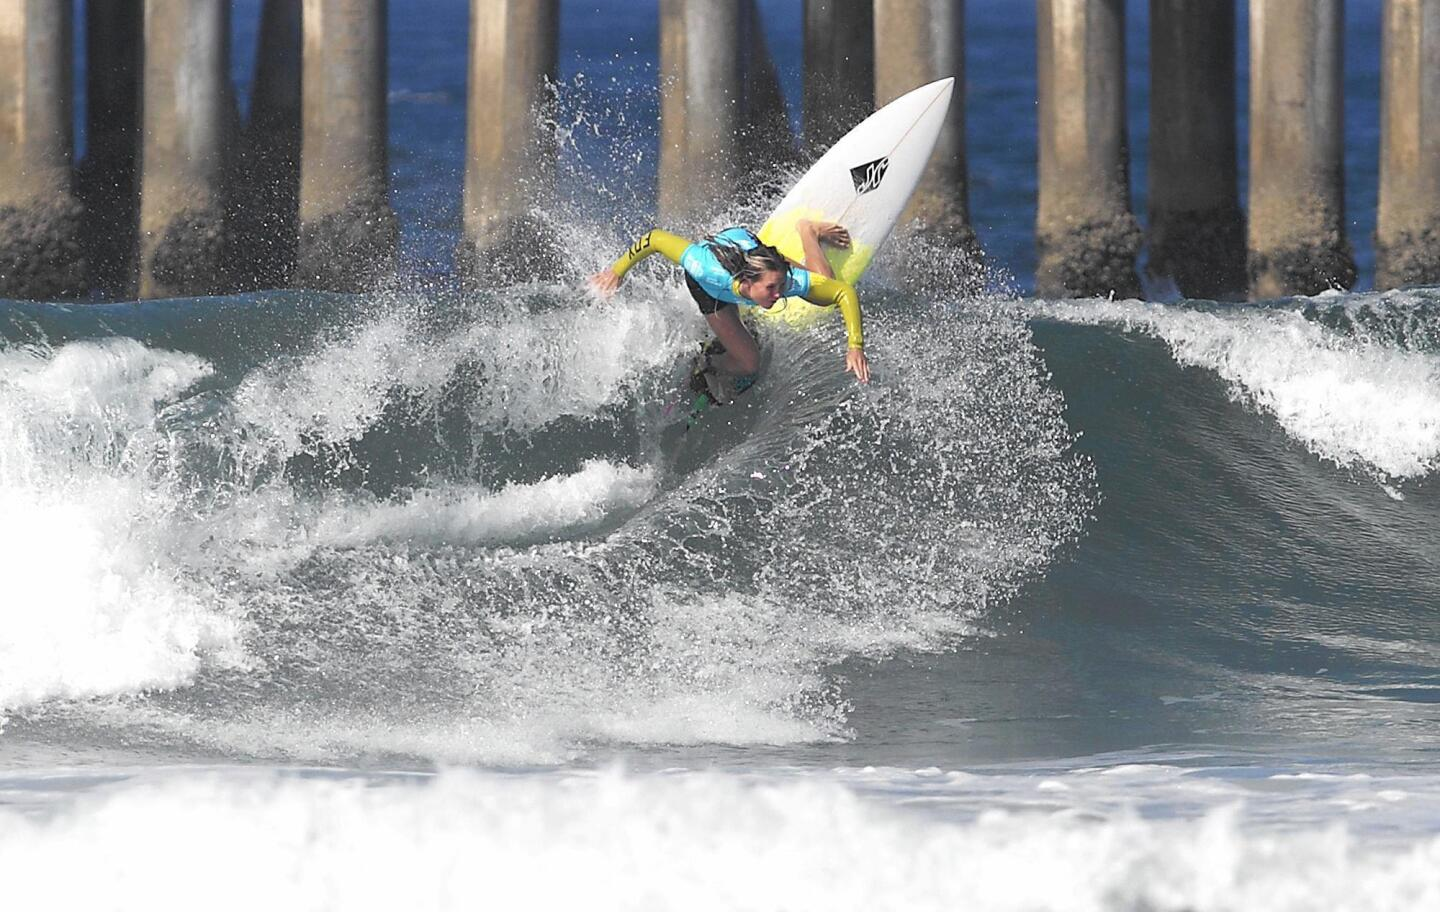 U.S. Open of Surfing, Round 2